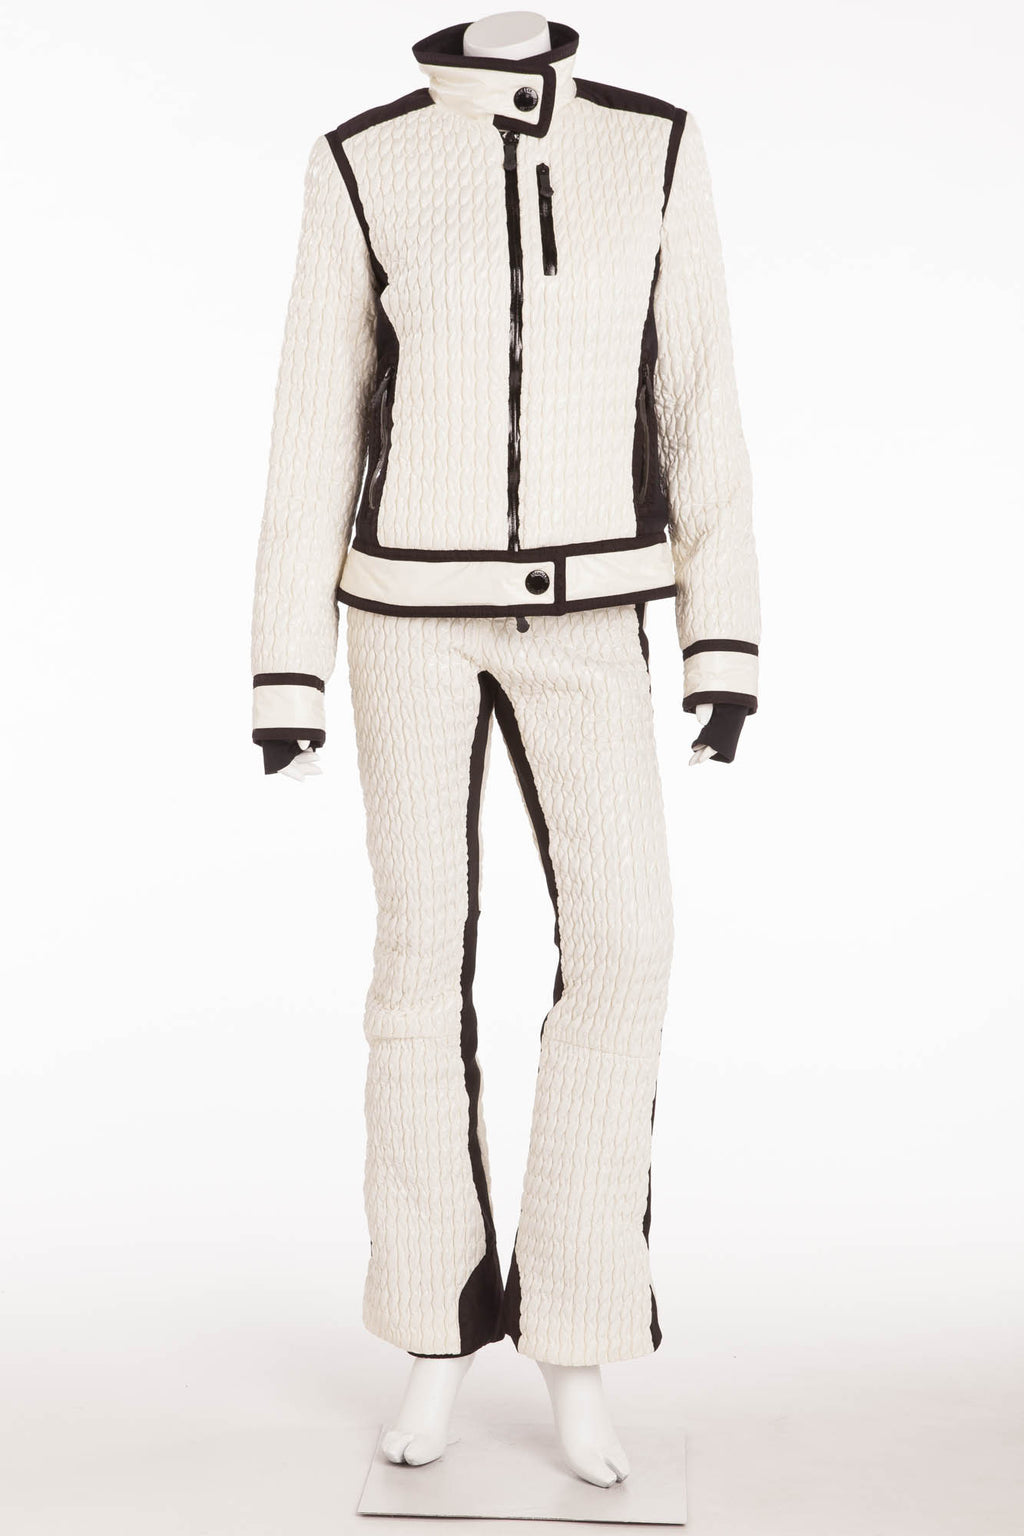 Moncler - 2PC White Puffy Sleeveless Jumpsuit & Jacket -IT 42